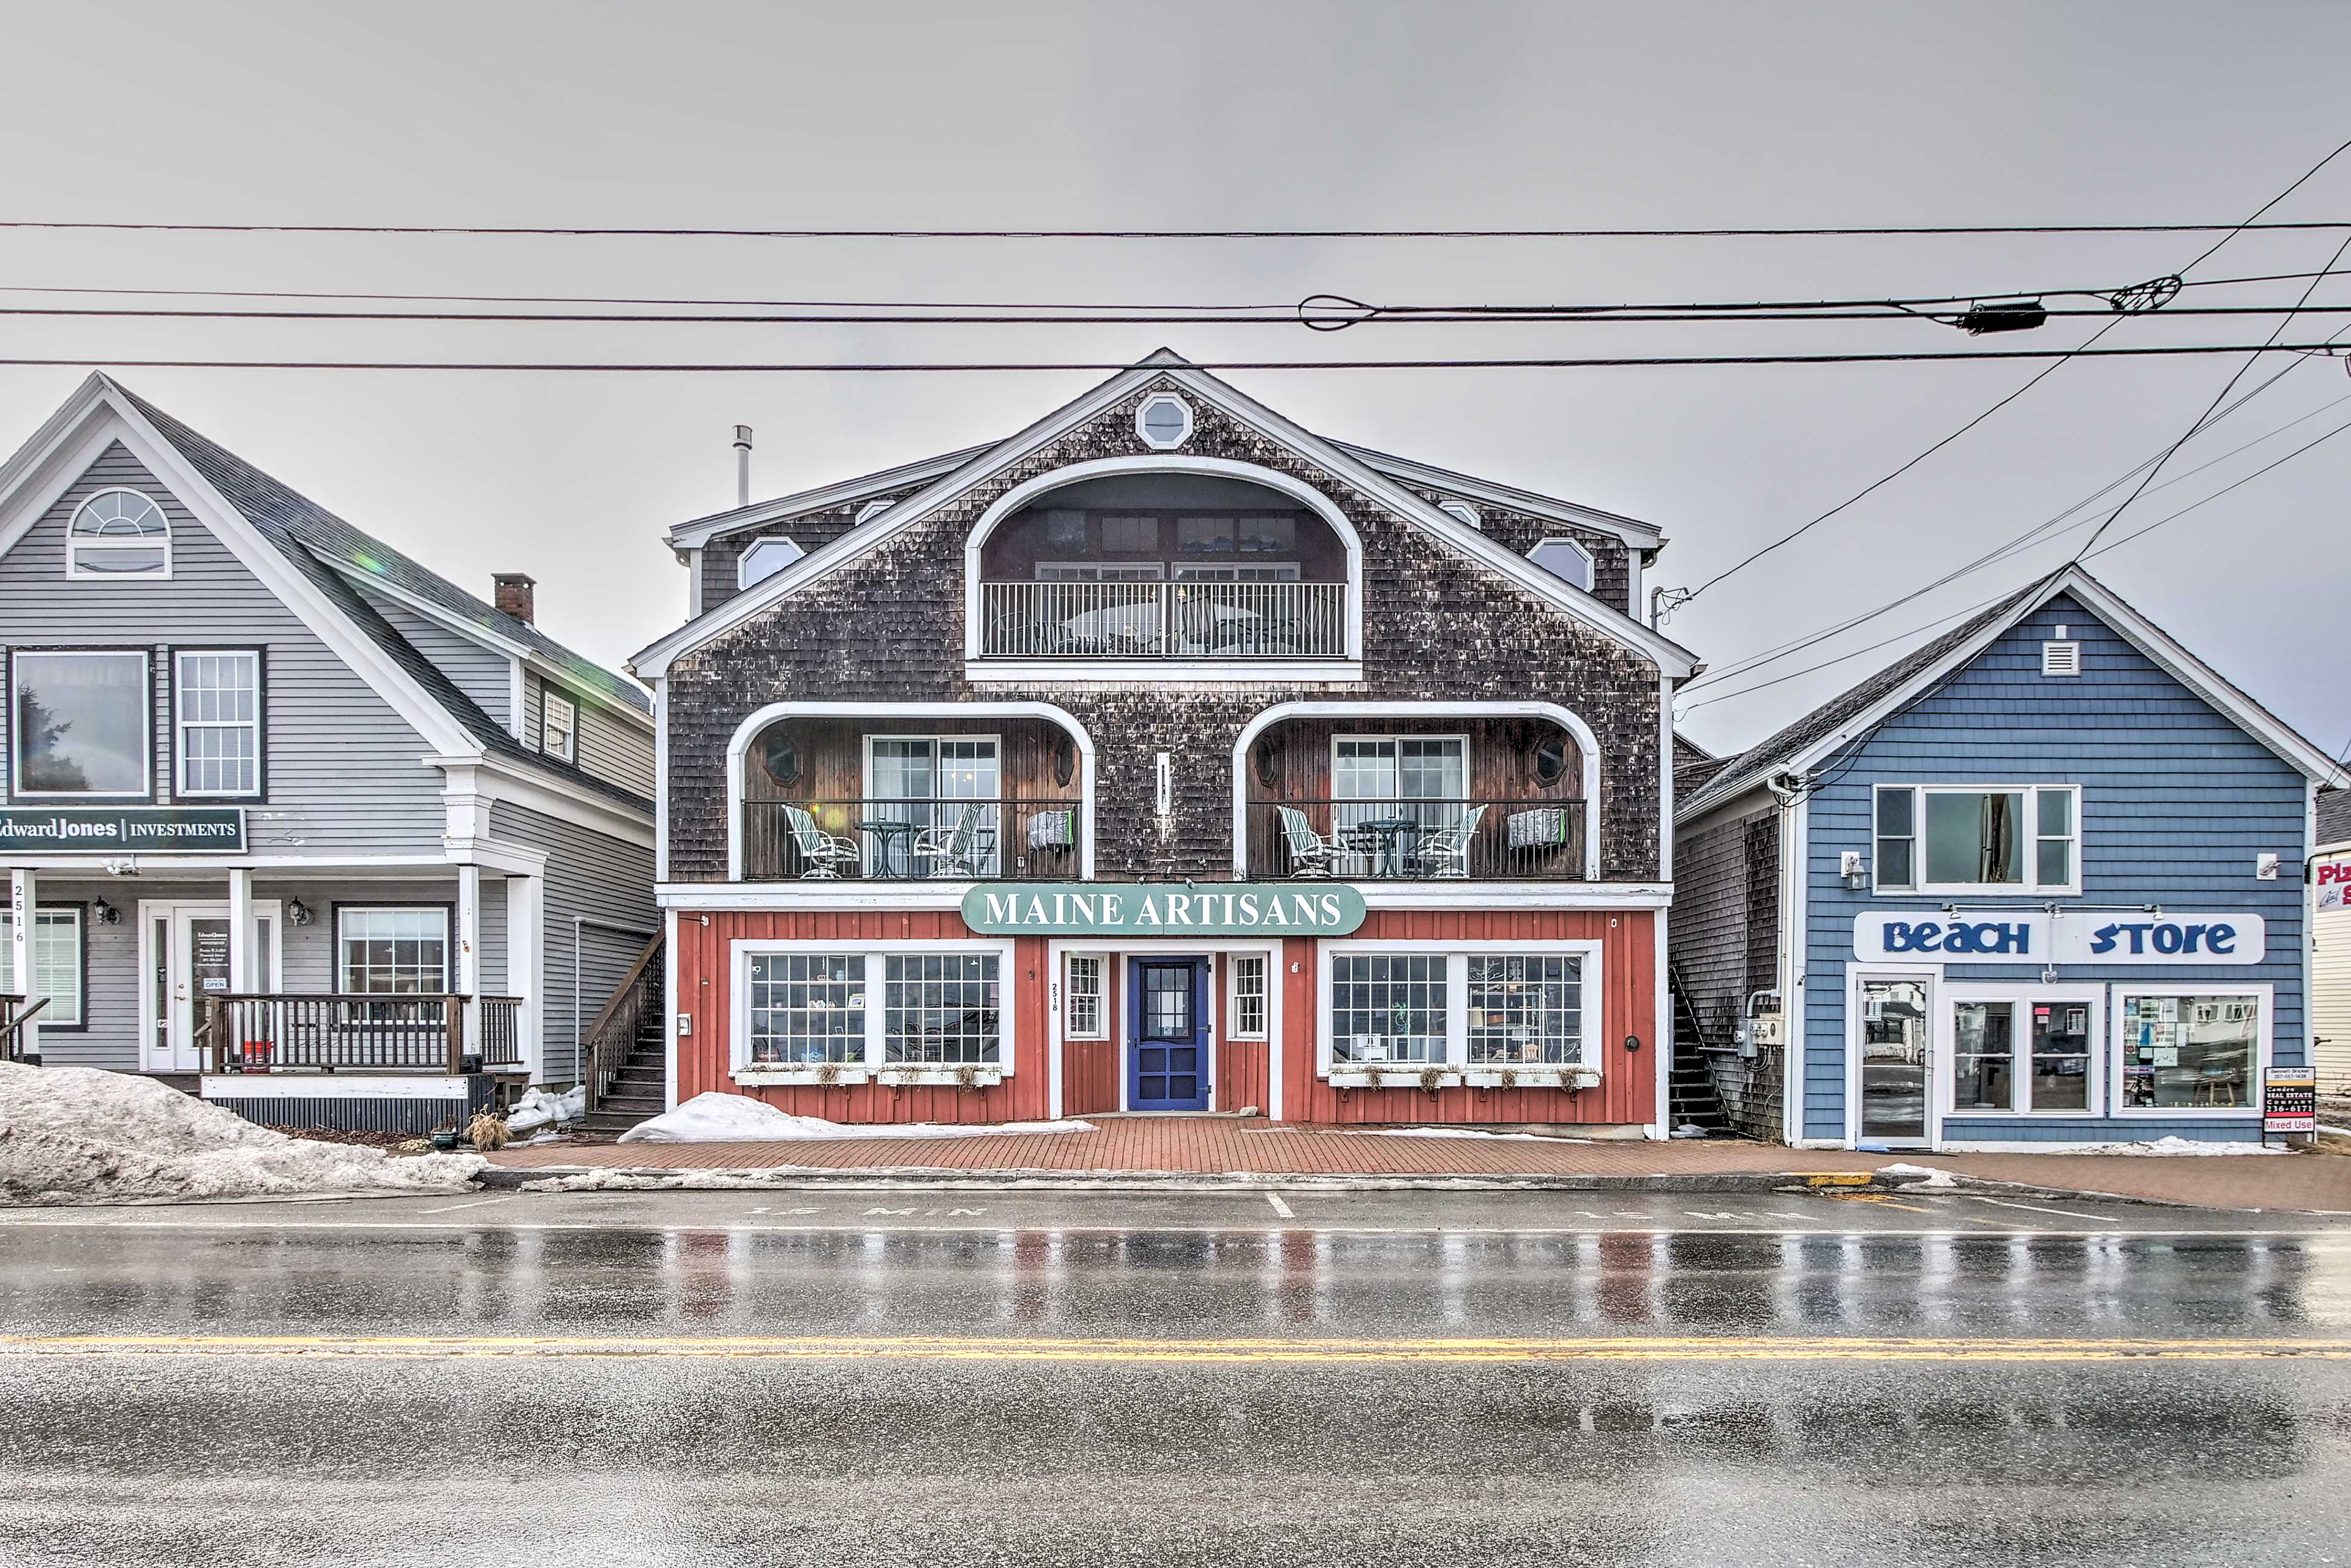 This vacation rental apartment sits above the charming Maine Artisans shop.